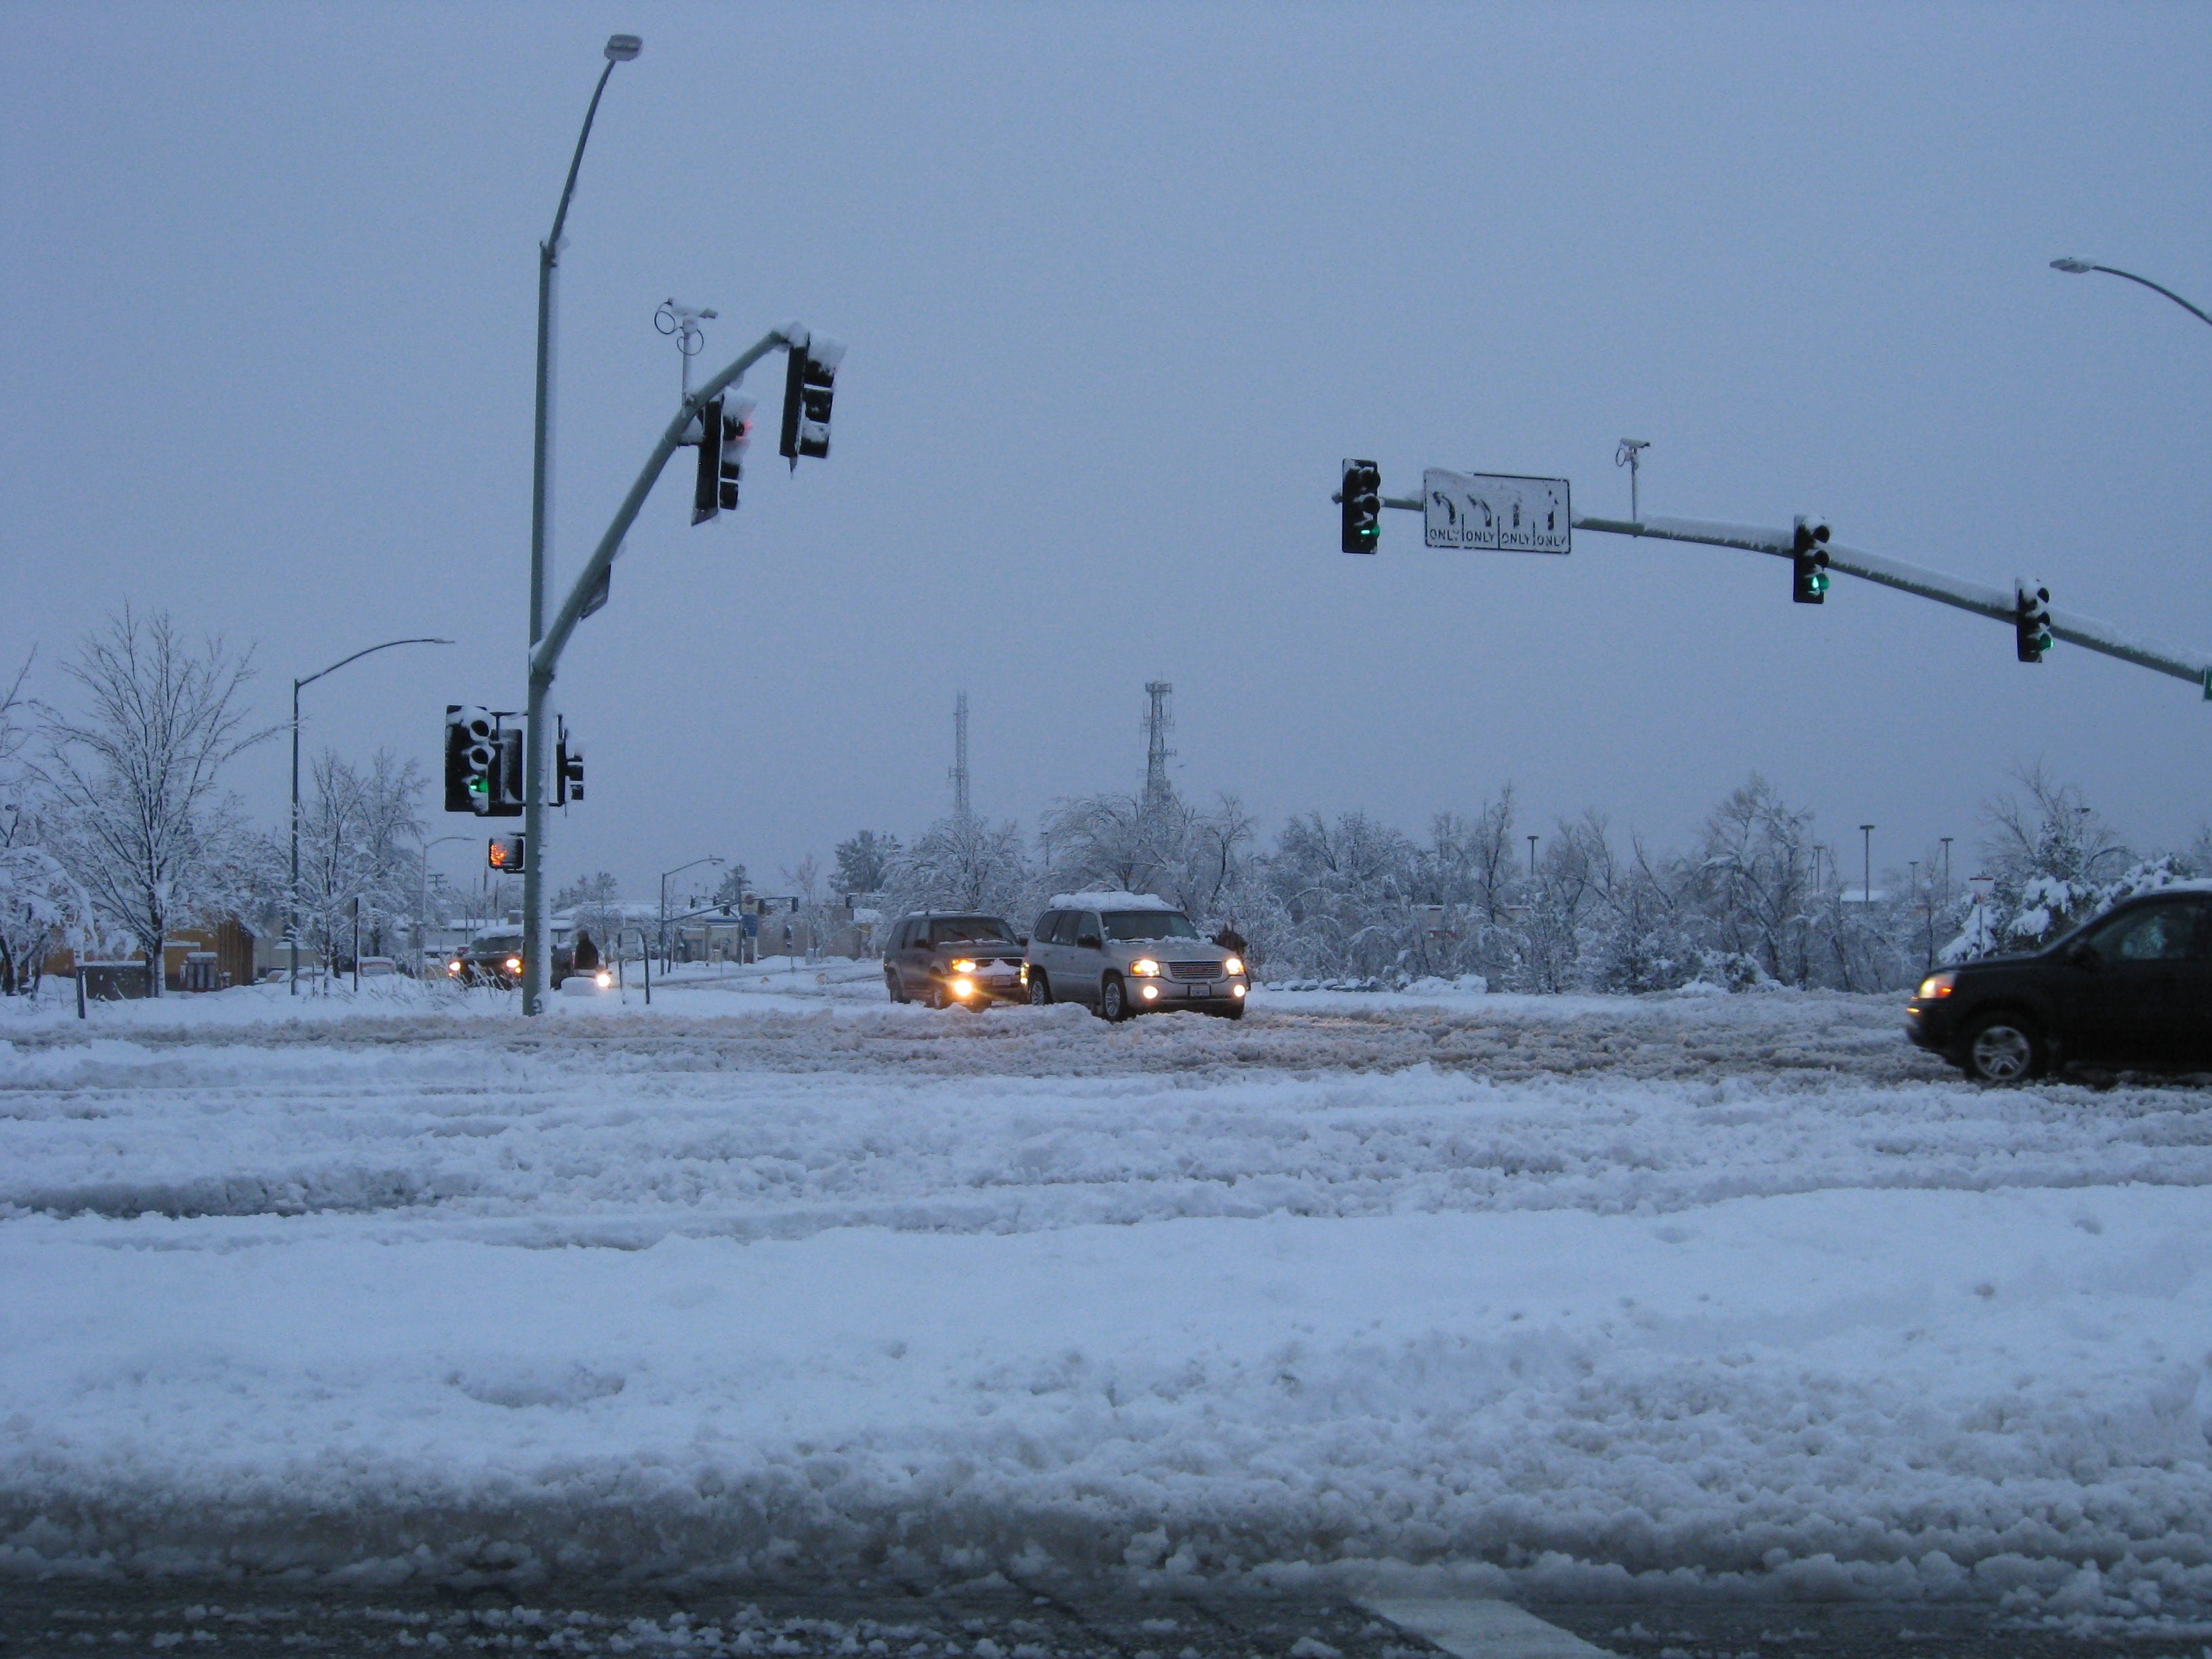 Snow at Lake Boulevard and Market Street intersection stopped most traffic, with some cars caught in snow.